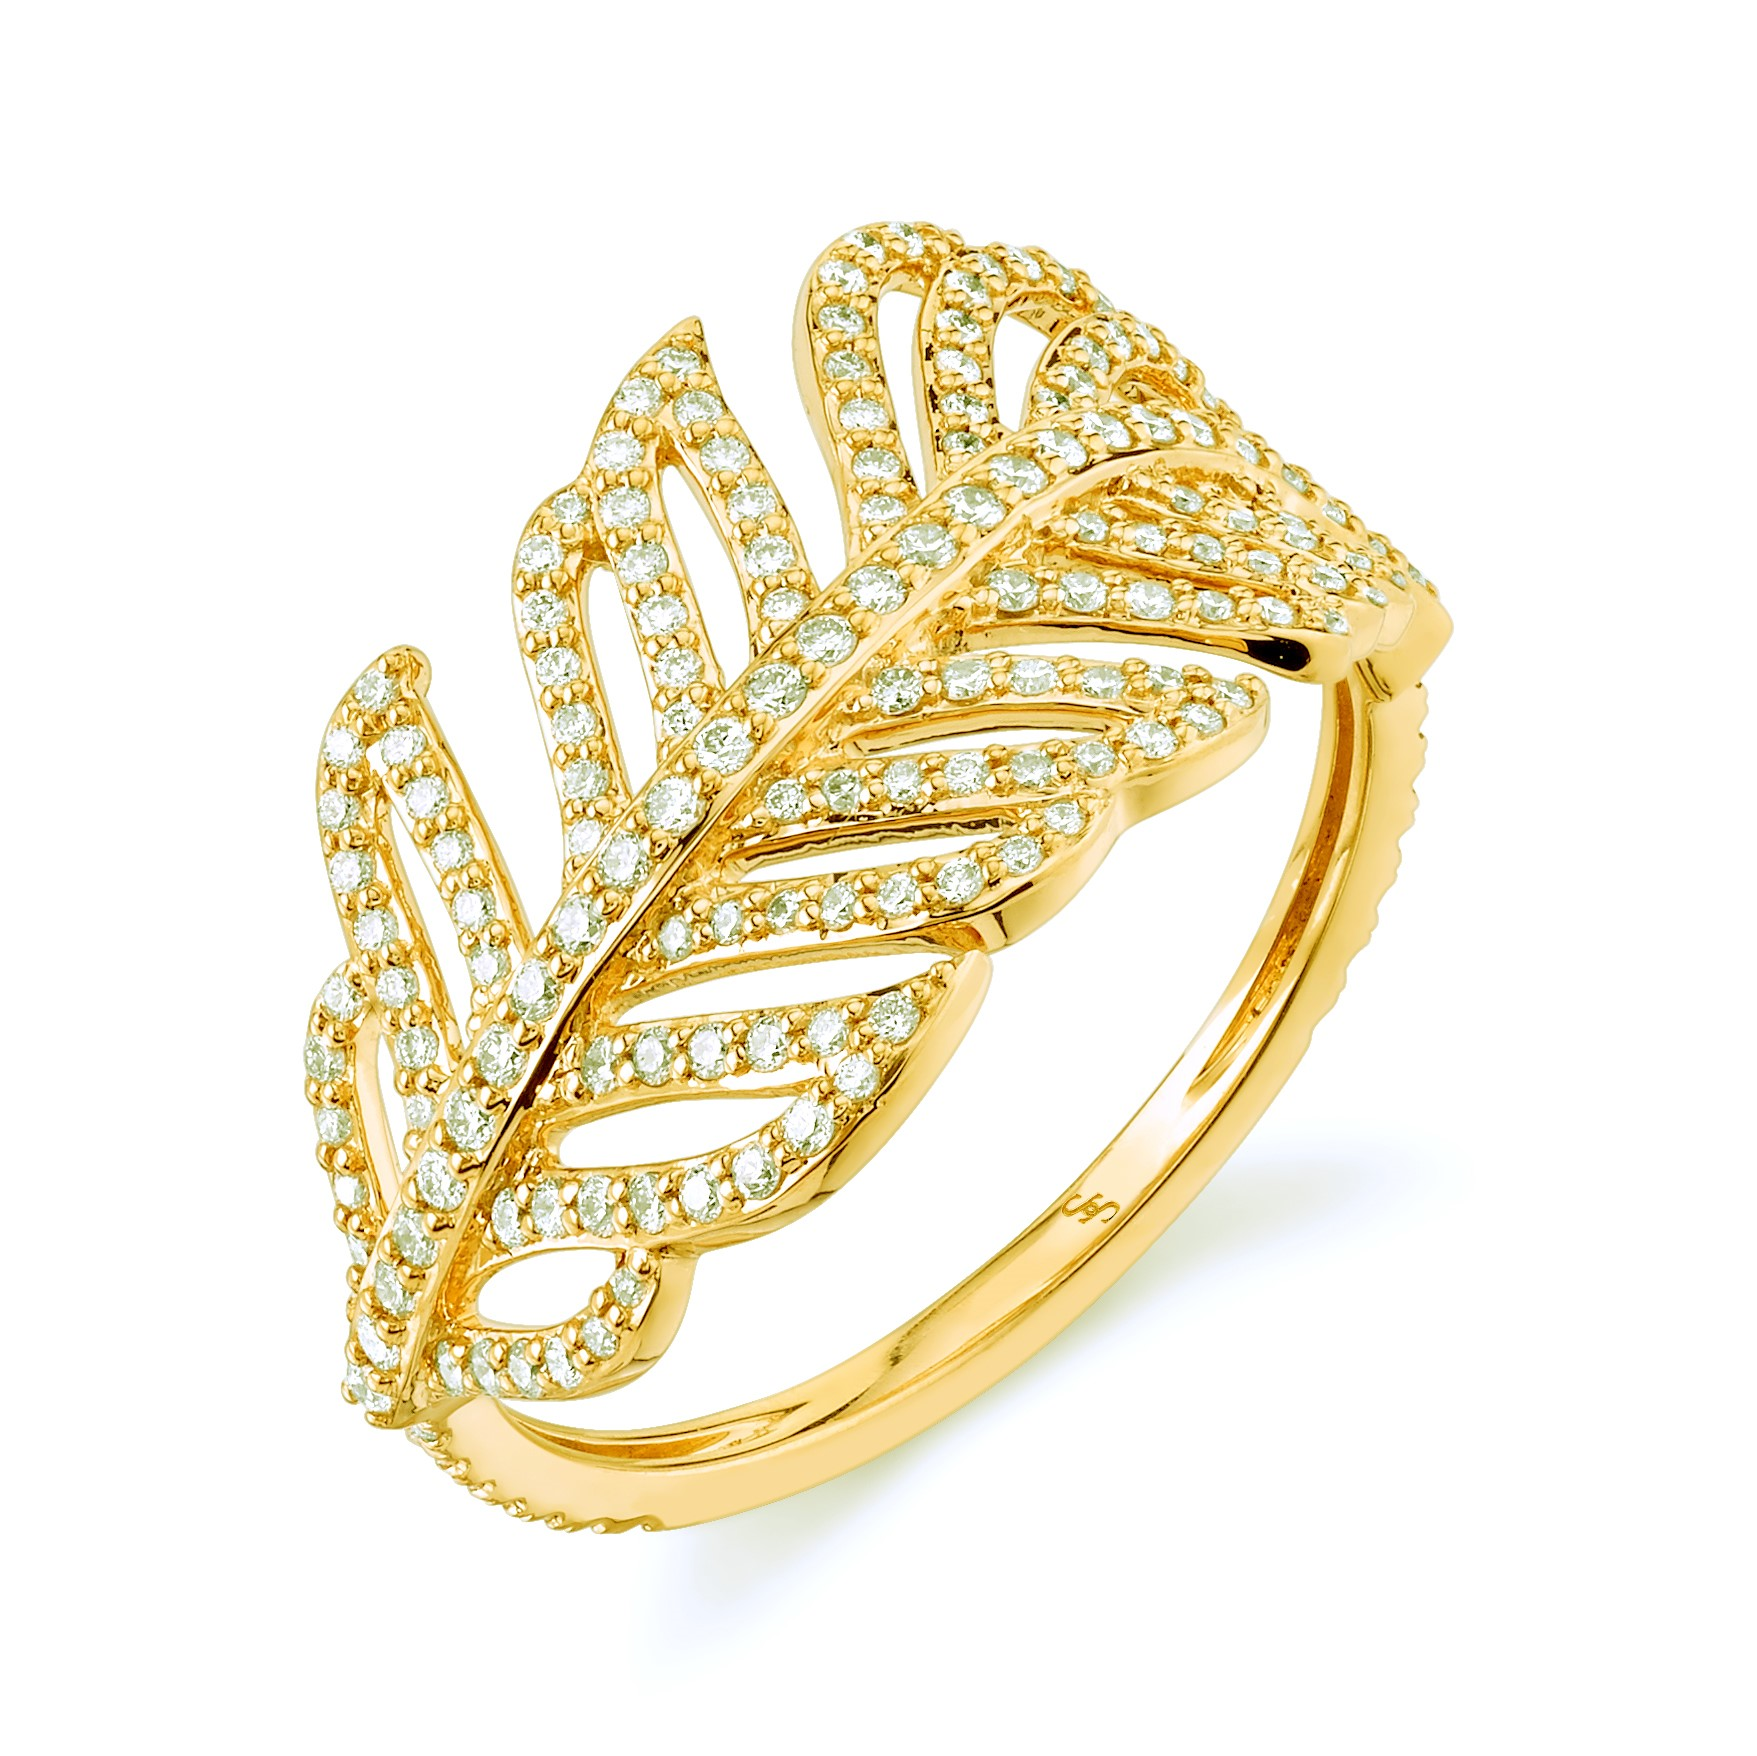 Sloane Street 18K Yellow Gold .66cts  Diamonds Gold Ring with Stones R176T-WD-Y